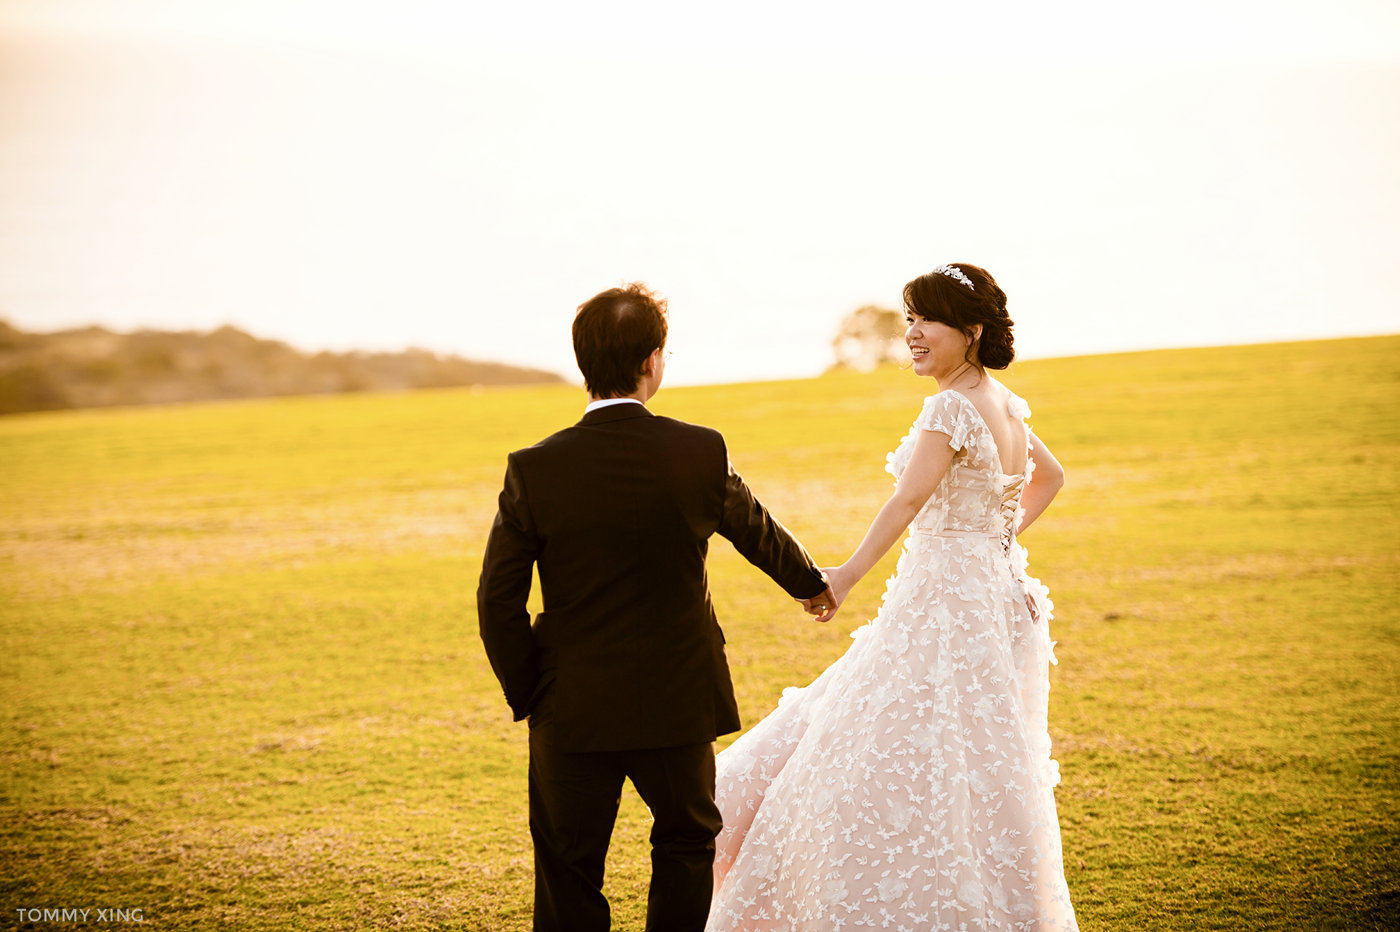 Qinglu Meng & Daozheng Chen Wedding Slideshow-186-E.JPG